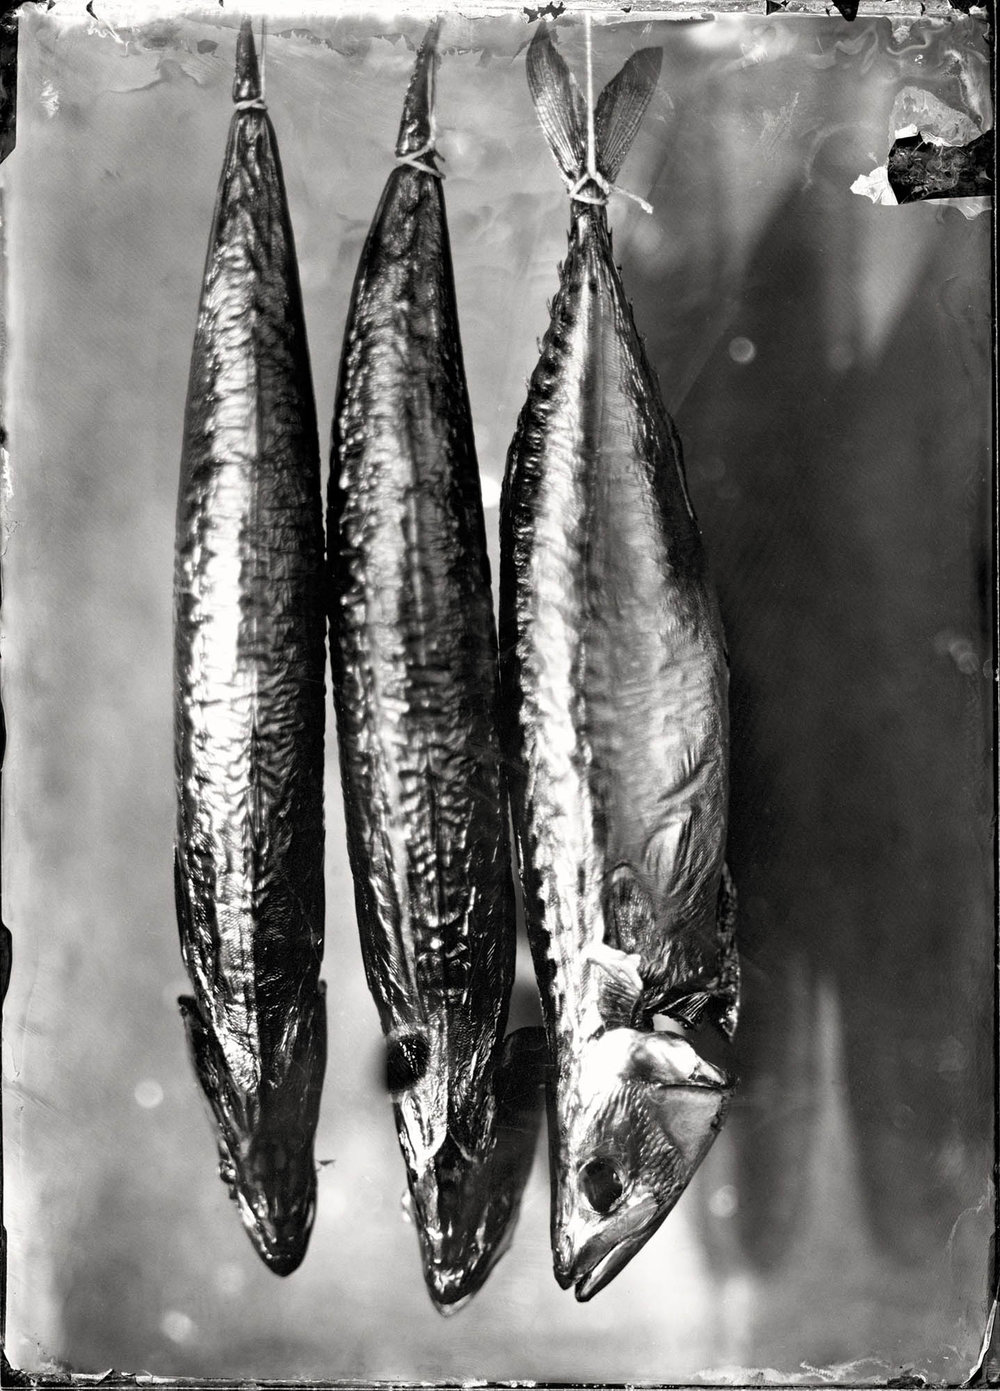 Title : Smoked Mackerel By: Peter  Eleveld    http://eleveld.net/blog/